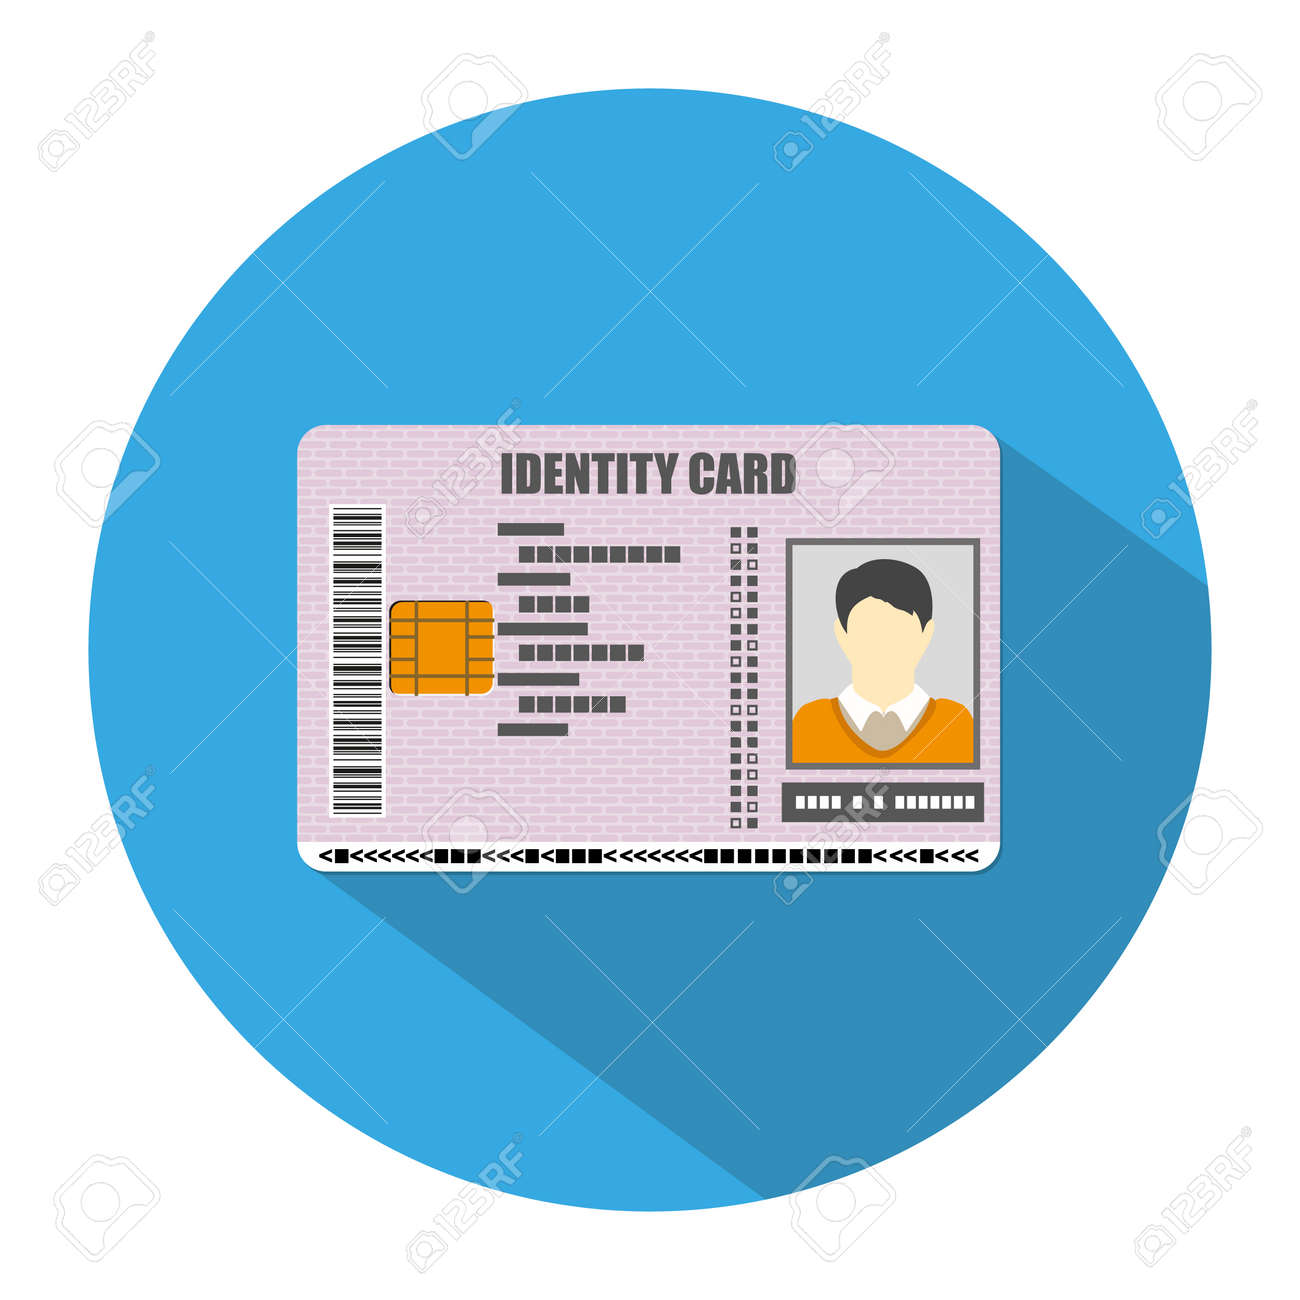 id card icon in blue circle with long shadow identity card royalty free cliparts vectors and stock illustration image 60486896 id card icon in blue circle with long shadow identity card